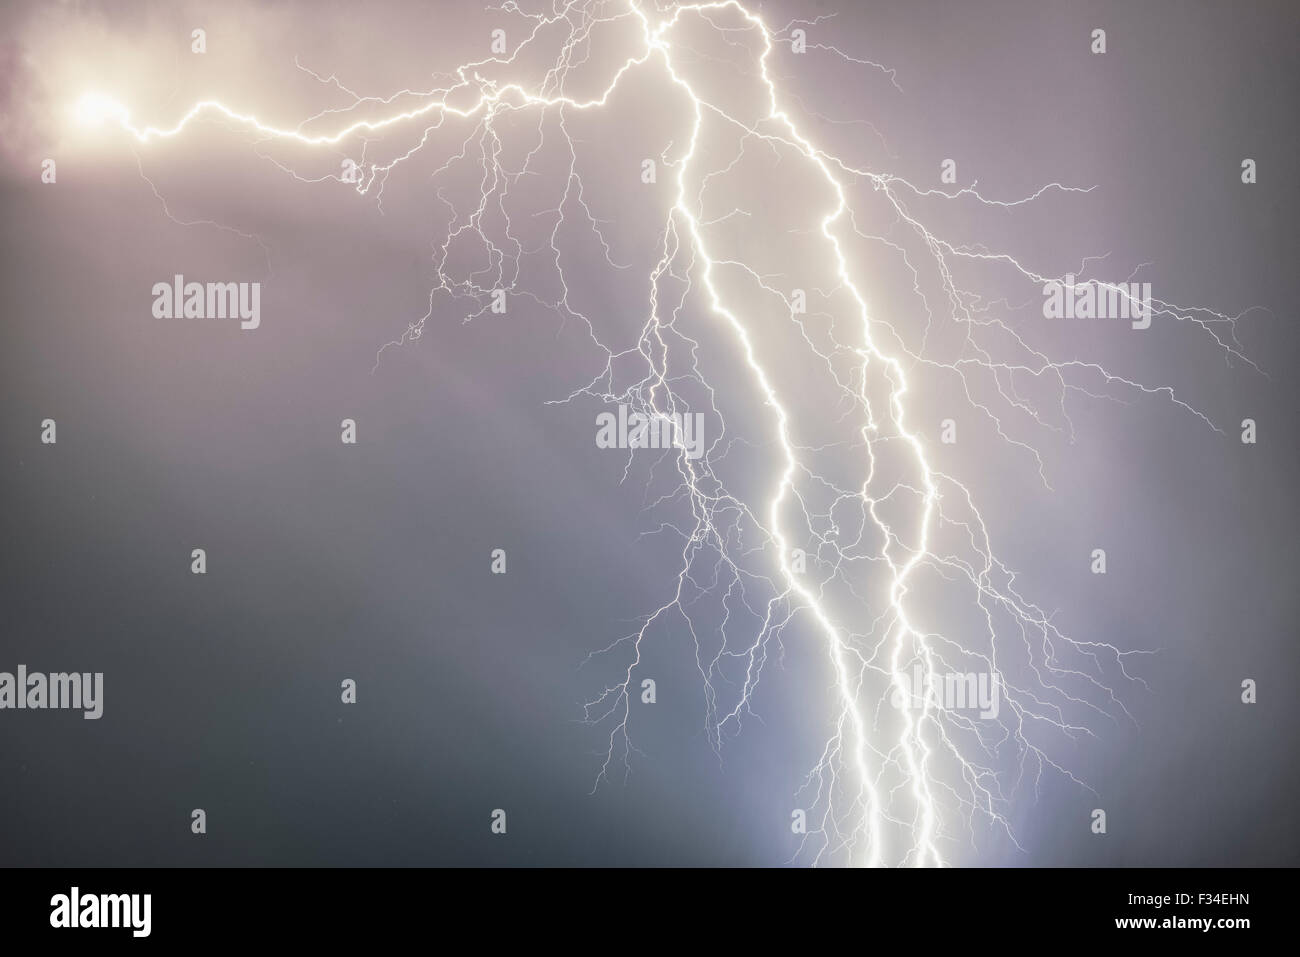 Forked lighting exploding from a cloud - Stock Image